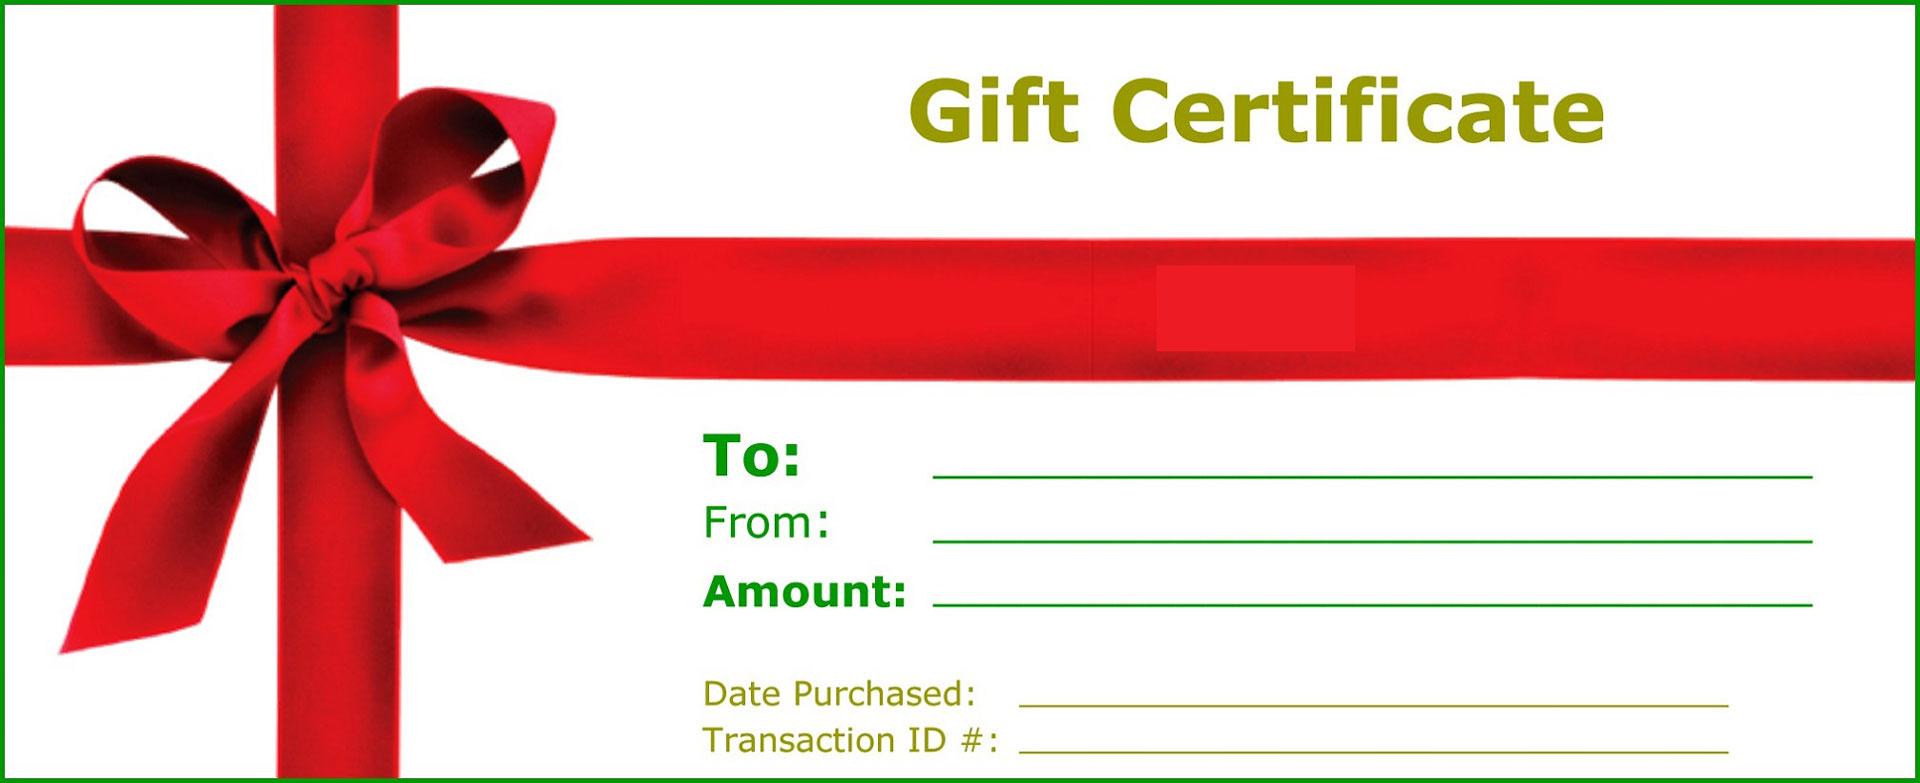 Gift Certificate Card